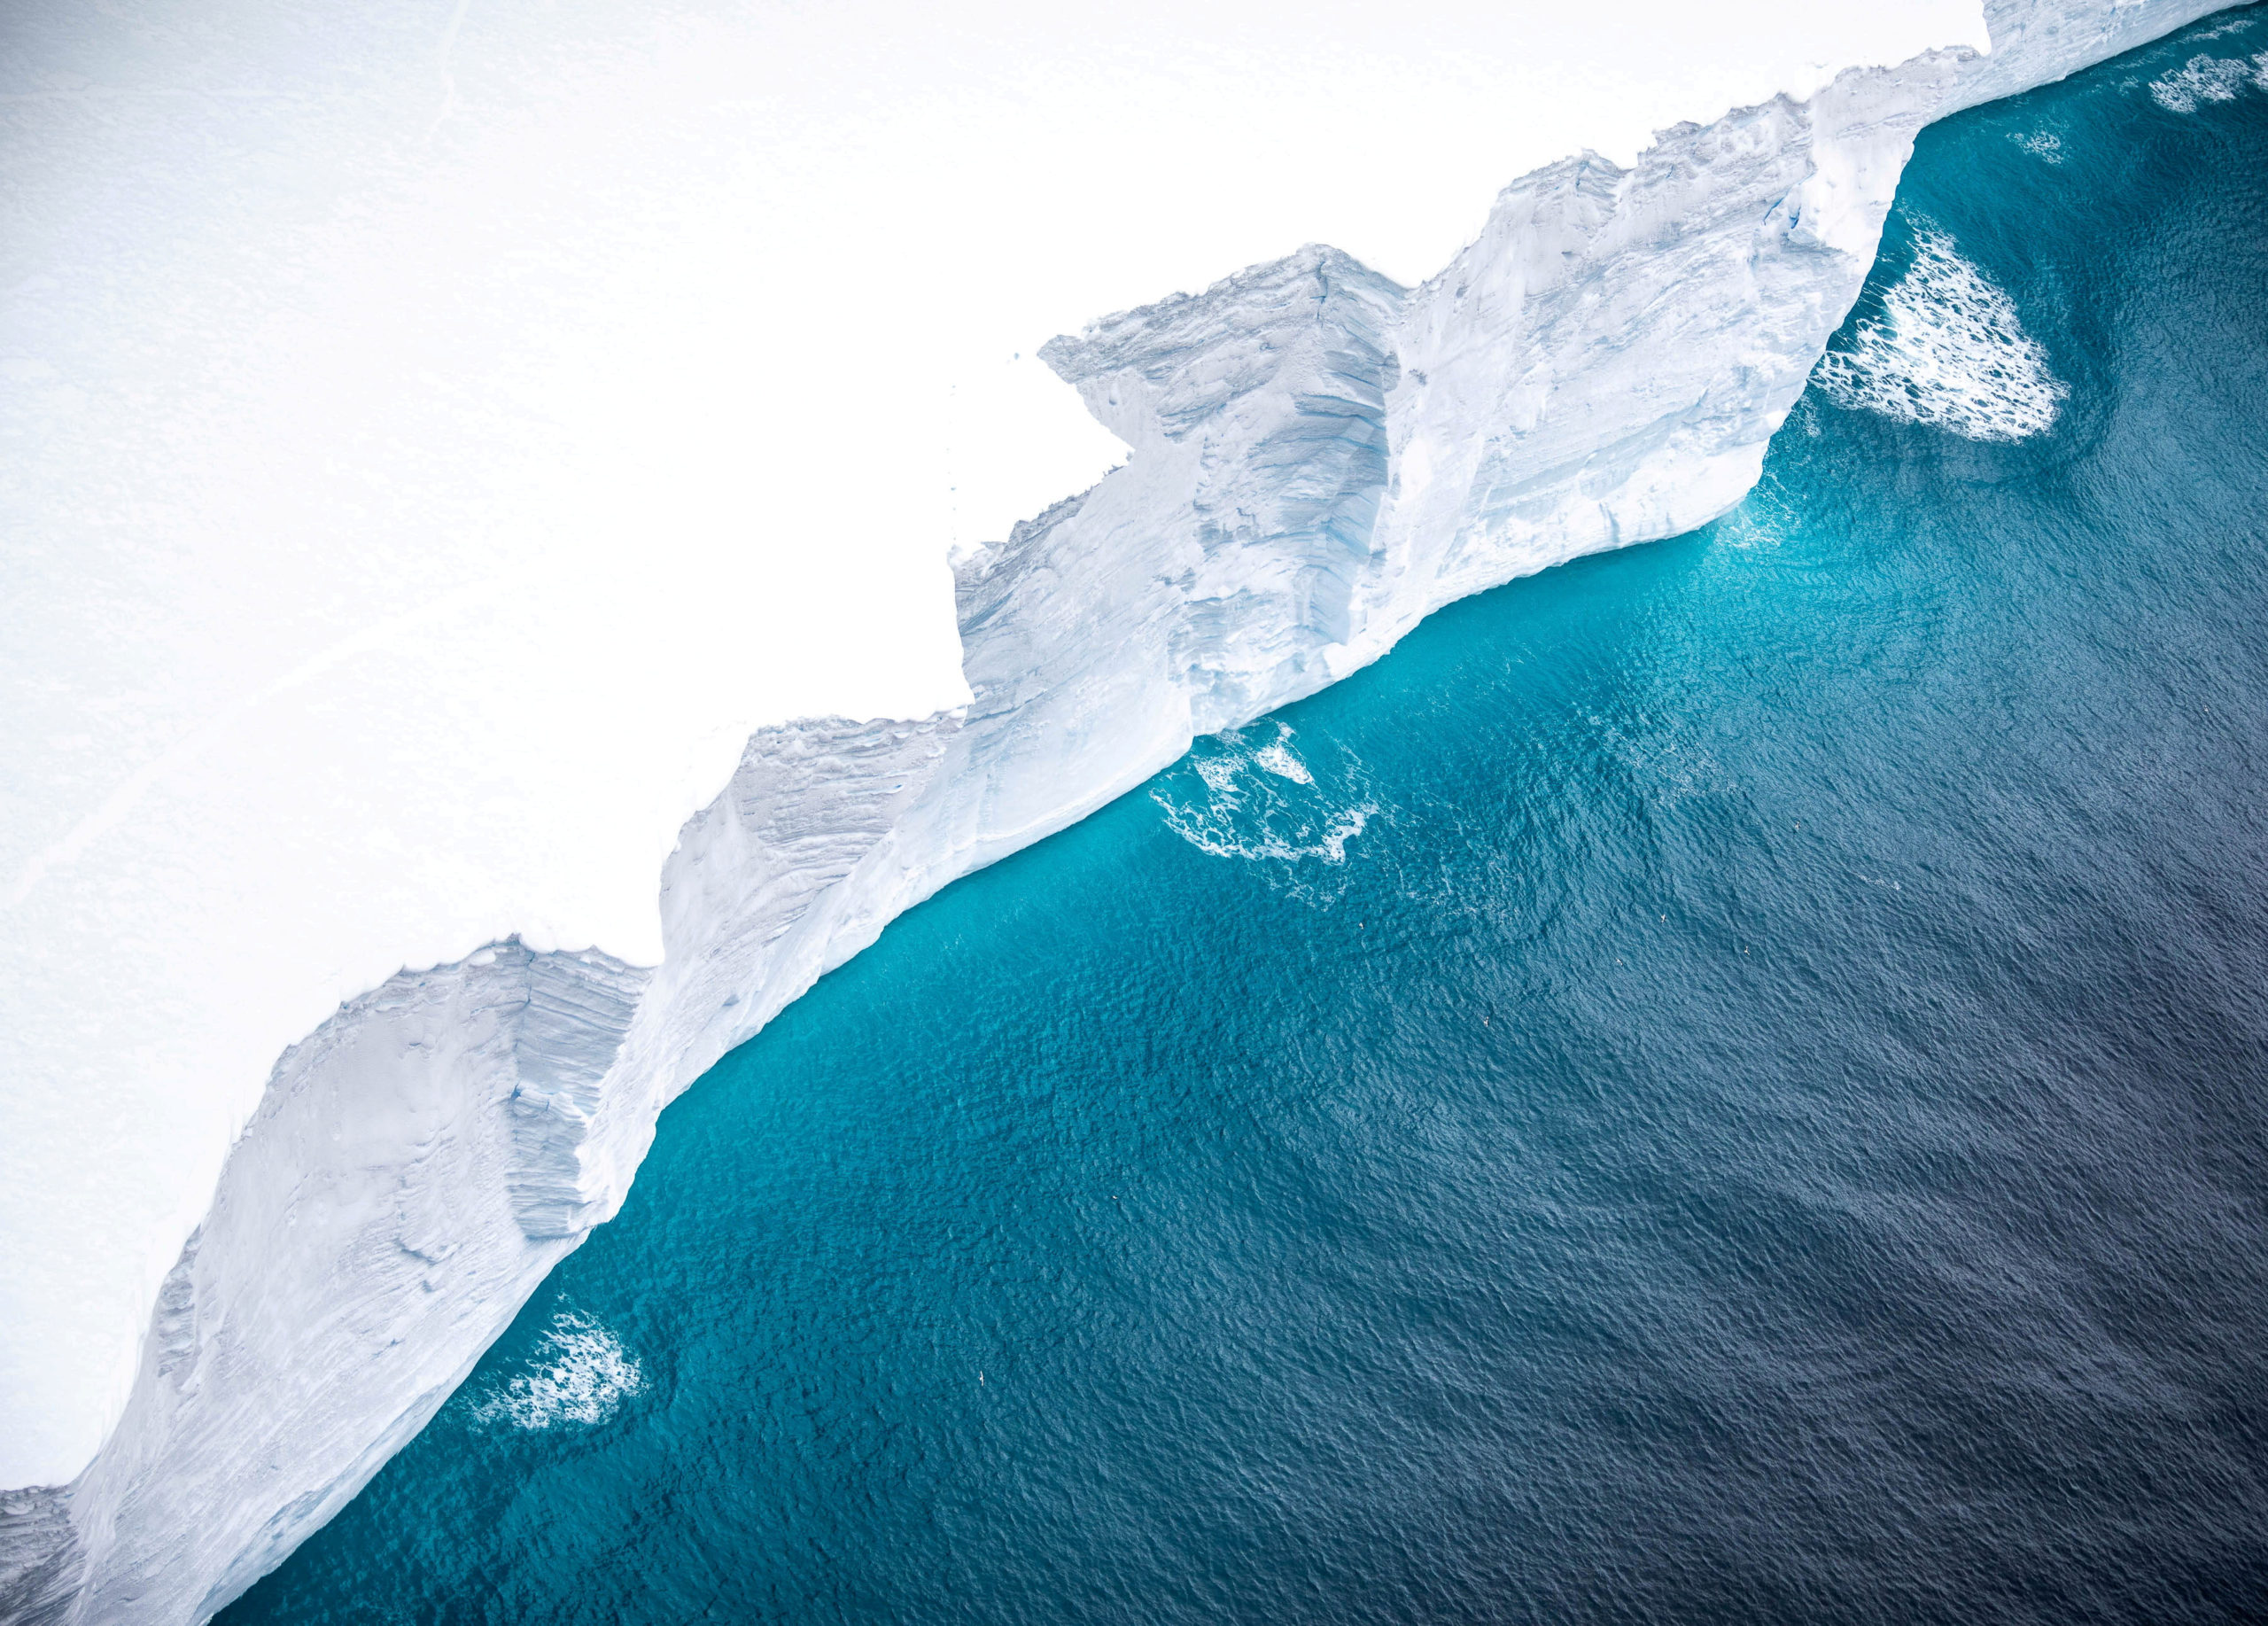 Of COVID-19 and Climate Change, One Is the Tip and the Other Is the Iceberg